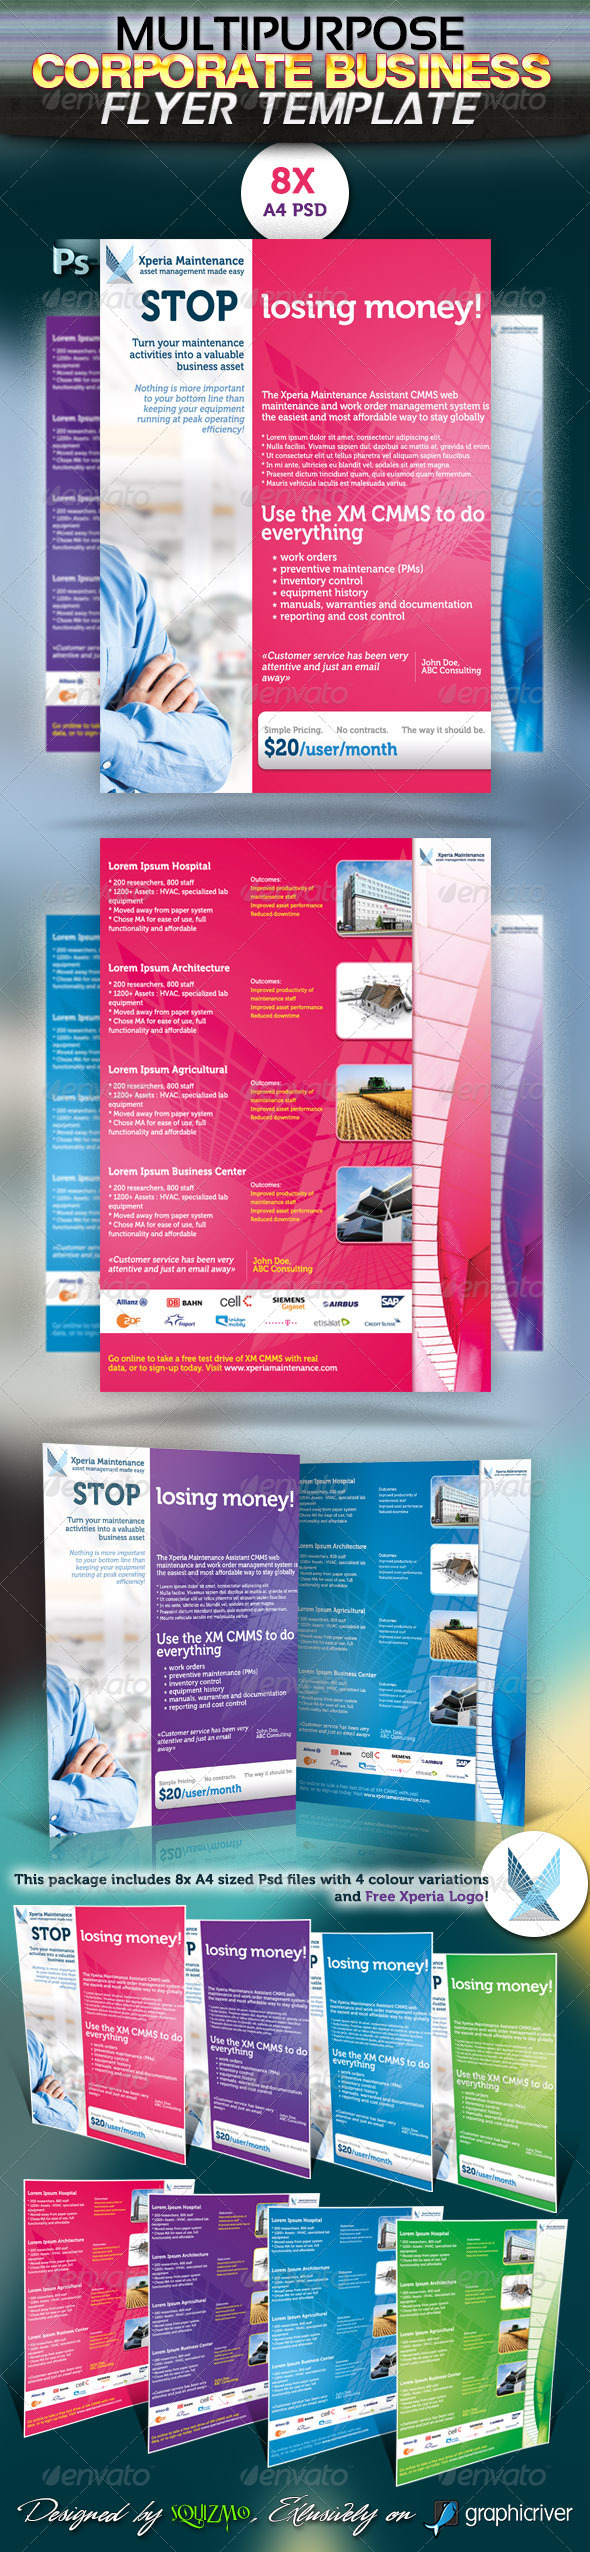 Multipurpose Corporate Business Flyer - Corporate Flyers